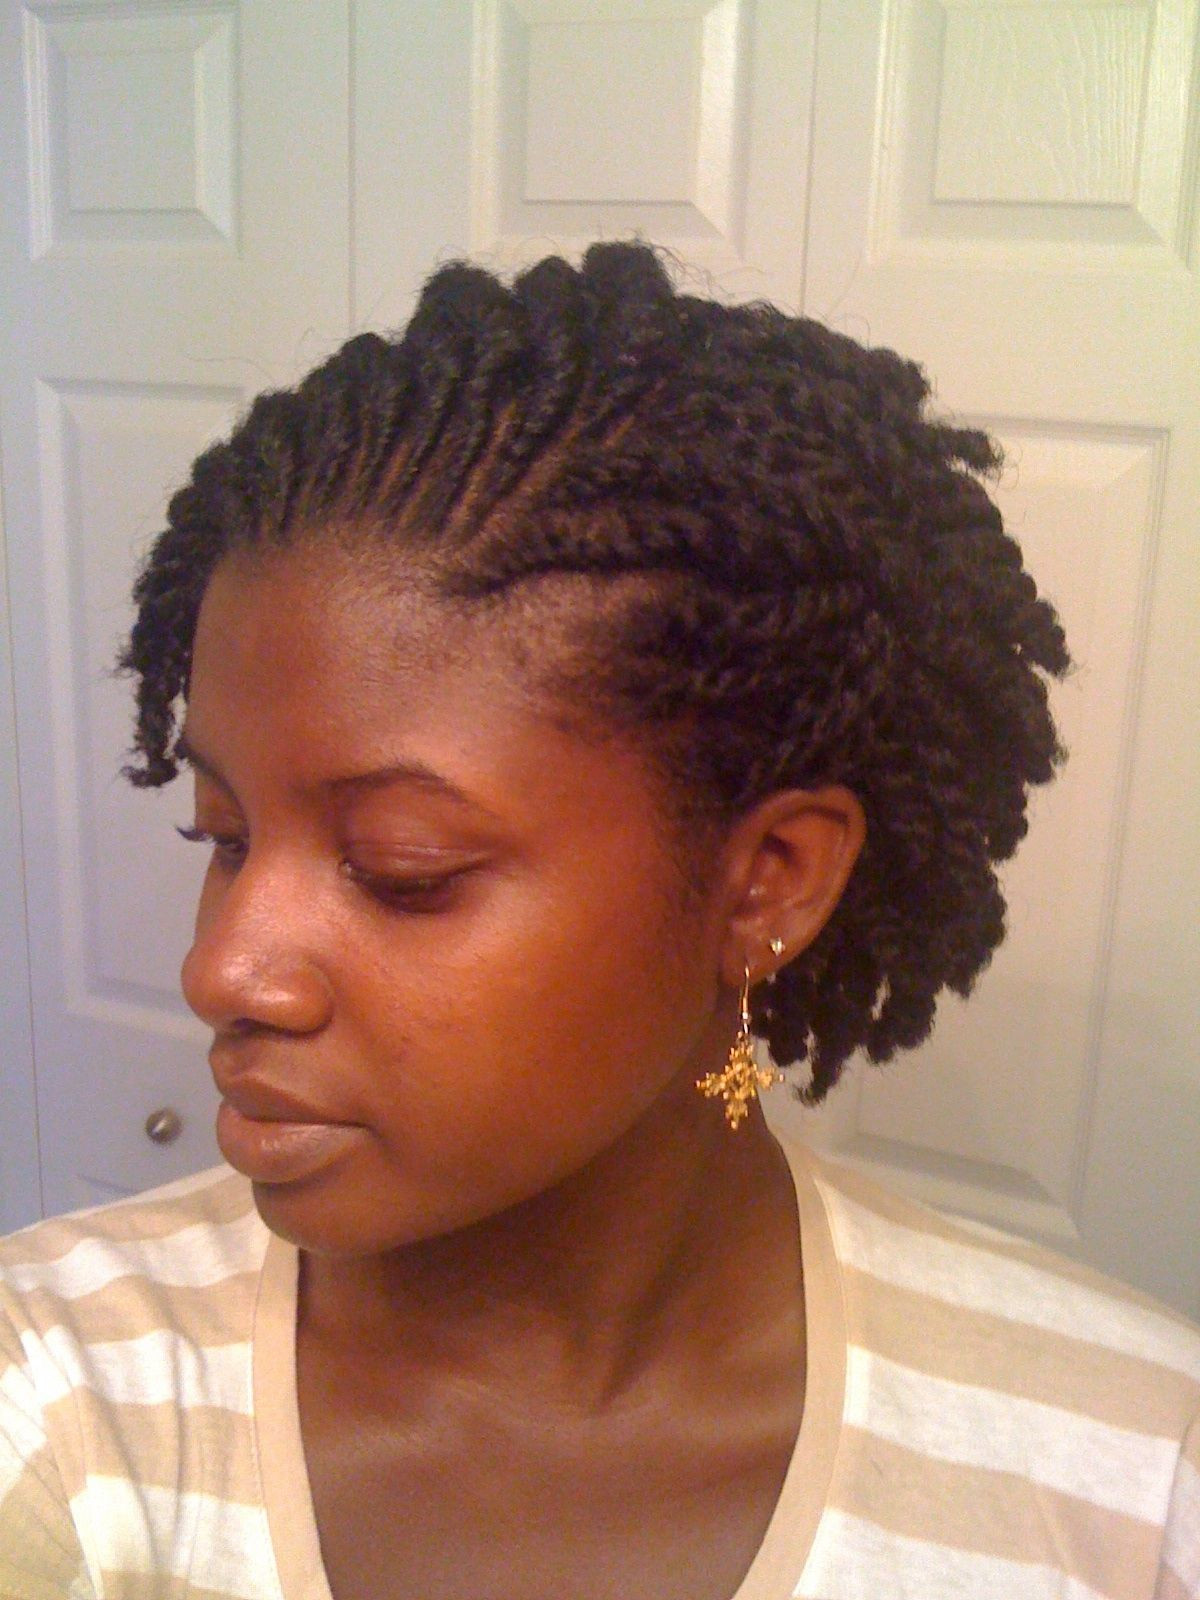 Best ideas about Twist Hairstyle For Natural Hair . Save or Pin Instagram naturallybrandyysmith Natural hair flat twist Now.